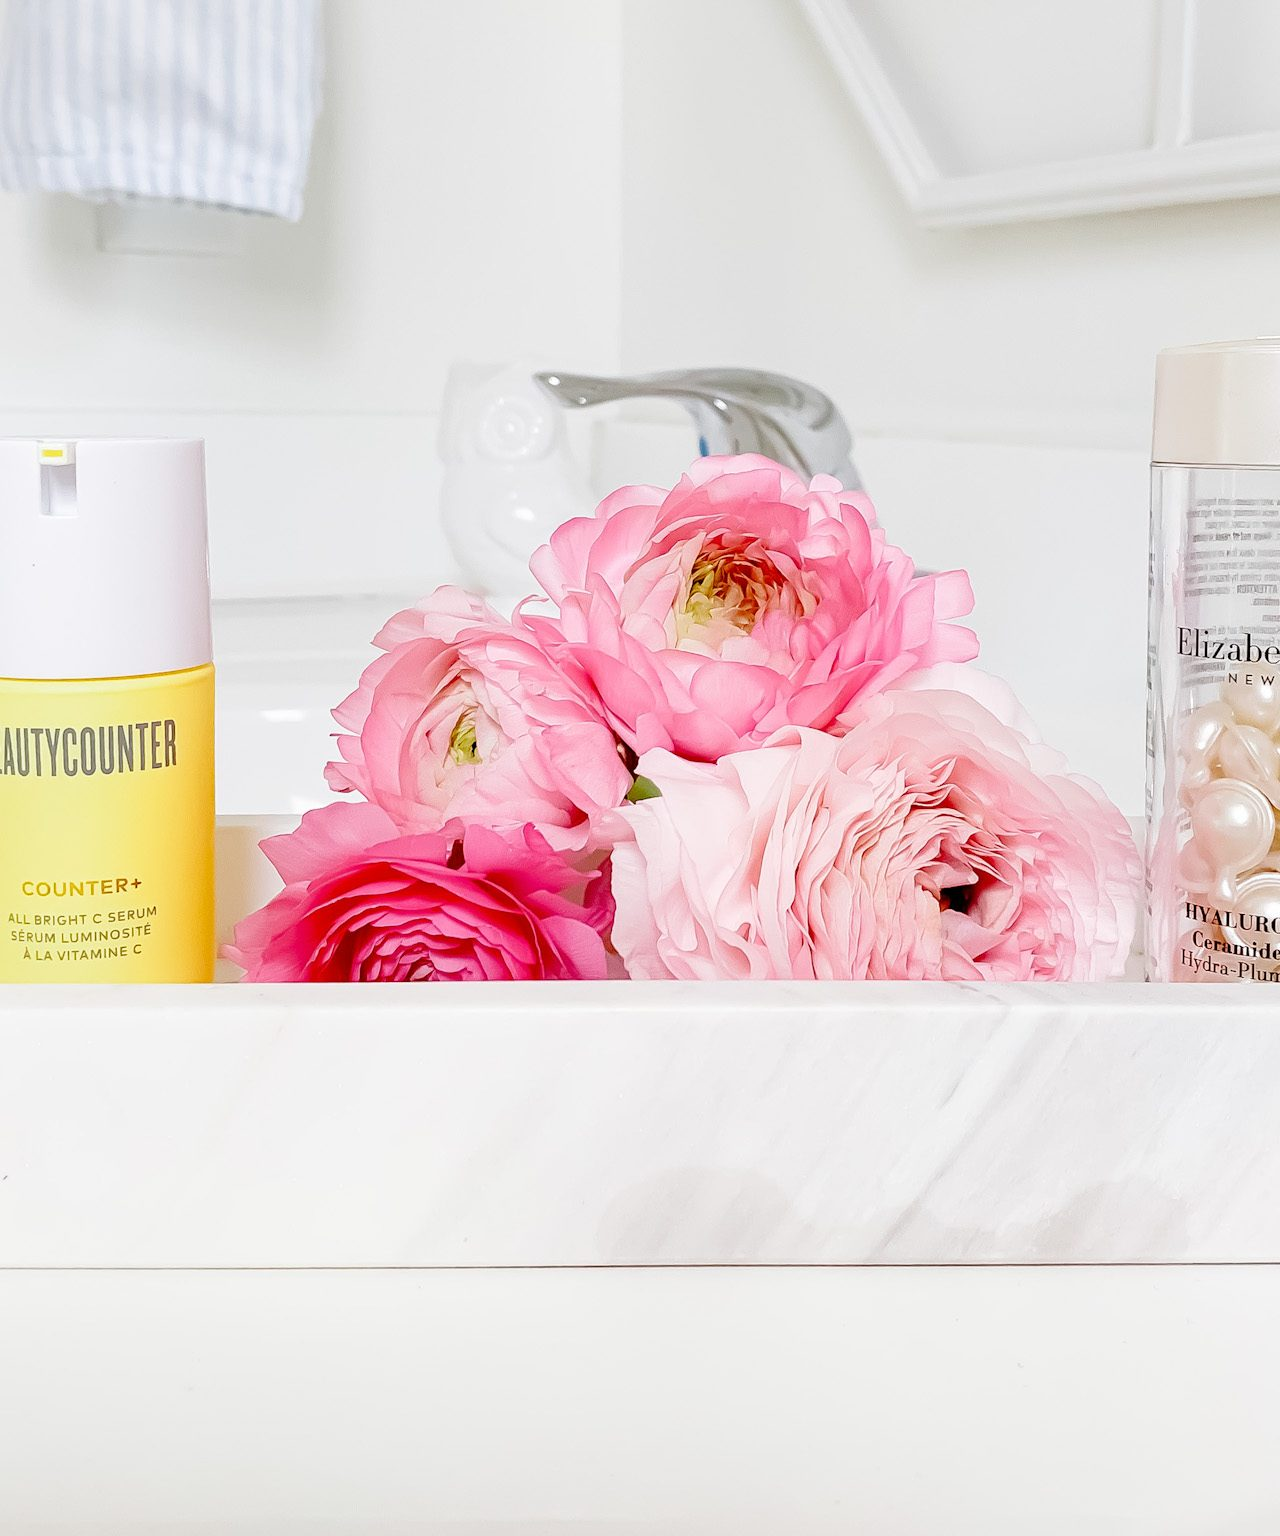 THE 2 AMAZING PRODUCTS THAT CHANGED MY SKIN | I am sharing 2 skincare products you should try that changed my skin. Read post for details!